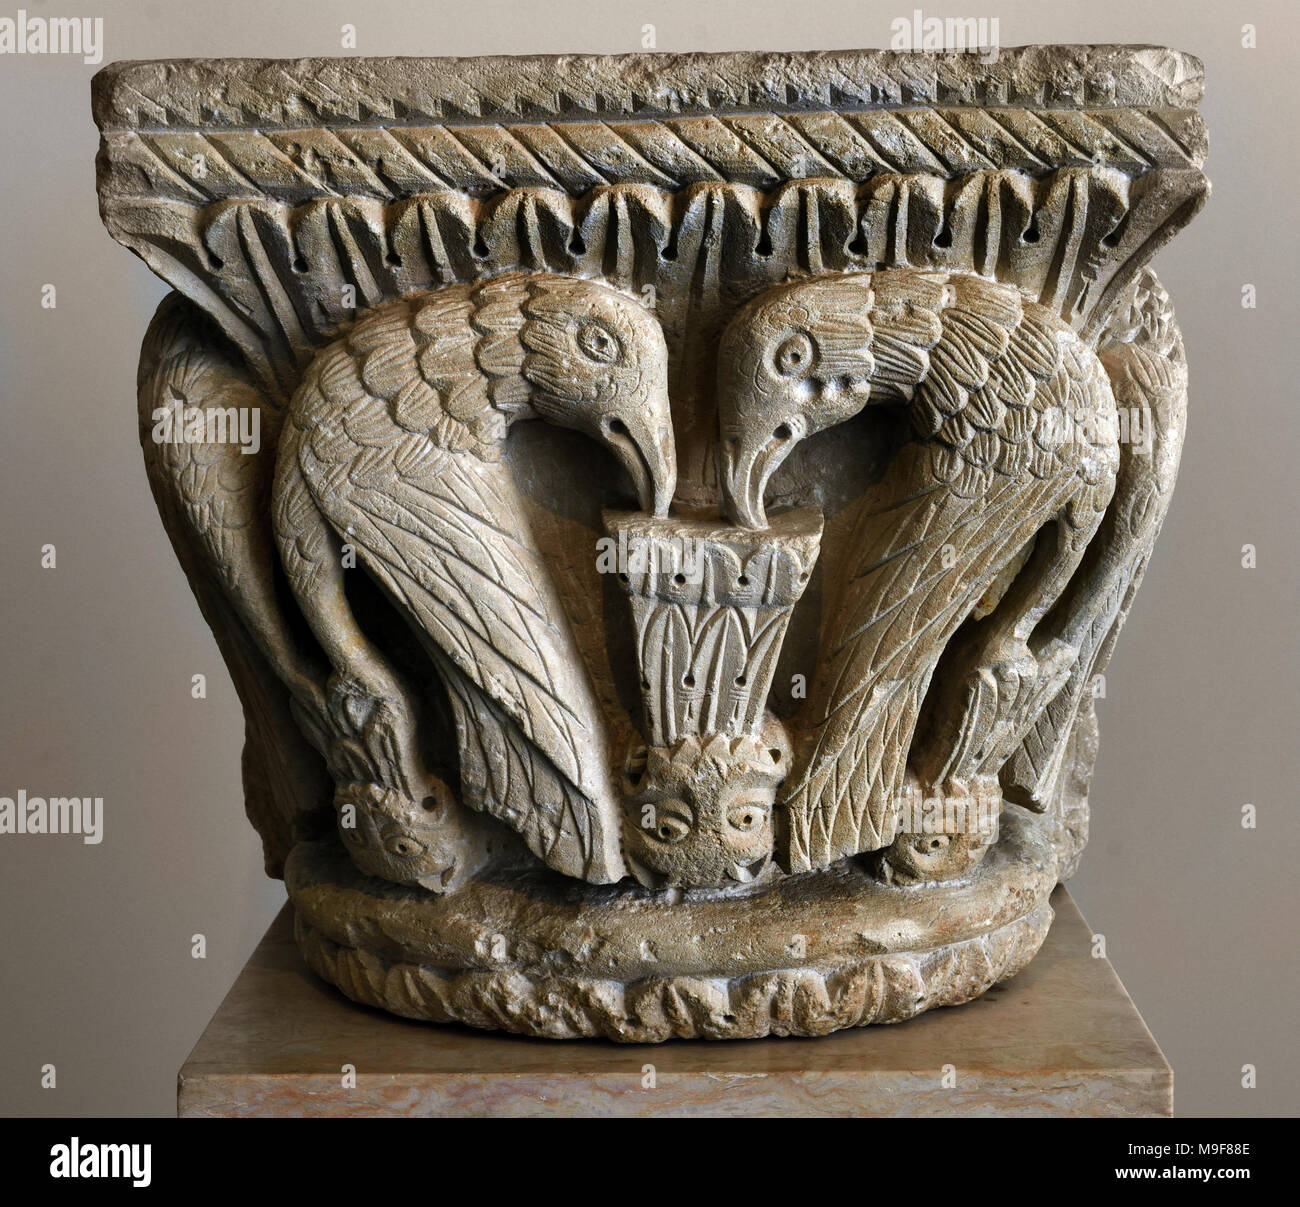 Mermaid Capital 12th century Portugal, Portuguese, ( Capital, rich in iconography, depicts a typical Romanesque theme – the mermaid is holding a fish in her right hand and raising her tail in the other. Church of San Pedro. ) - Stock Image